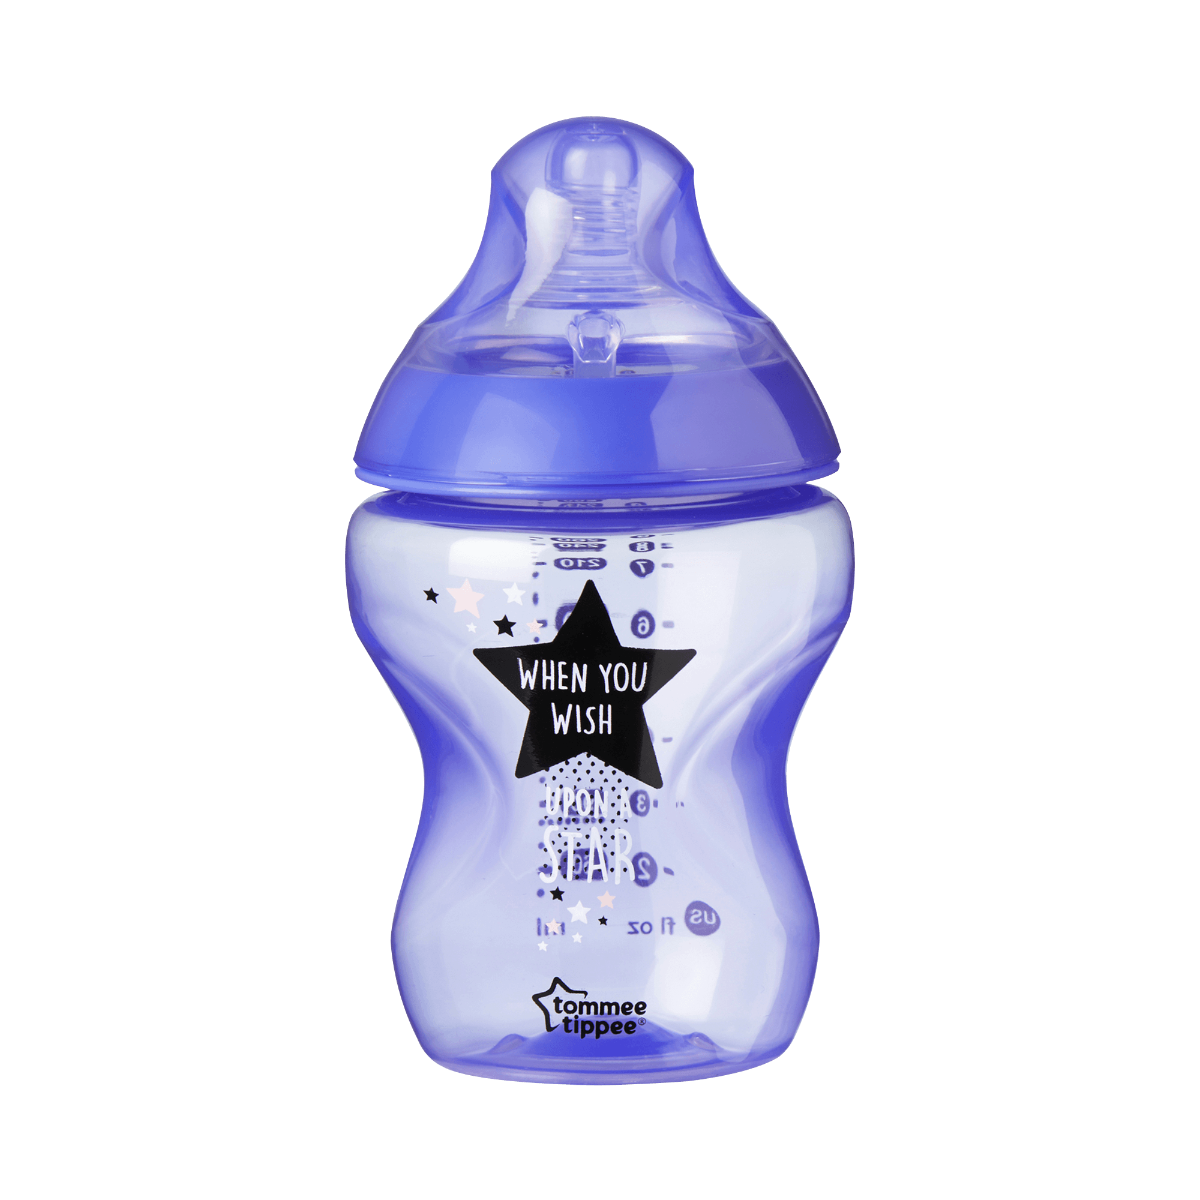 Single Closer to Nature Time to Dream Baby Bottle in purple